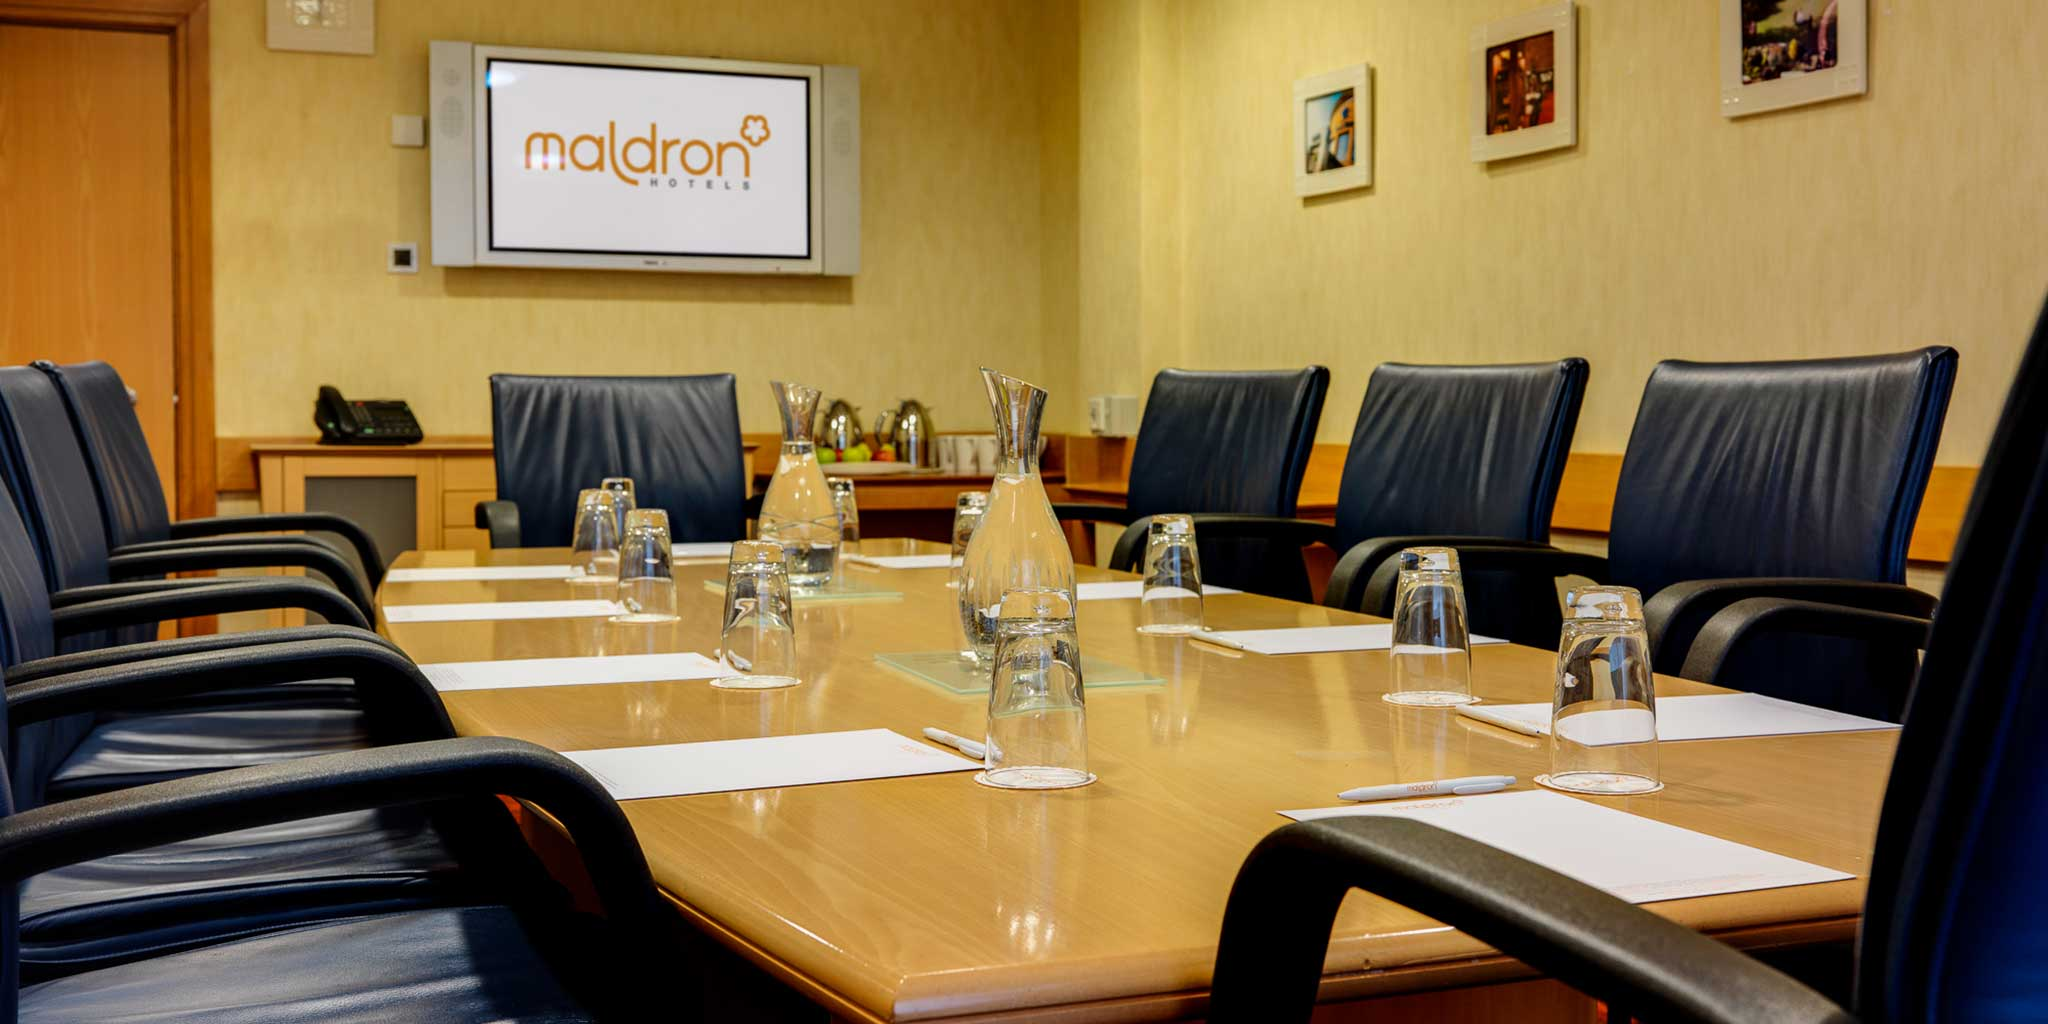 Maldron-Hotel-Belfast-International-Airport-boardroom-meeting